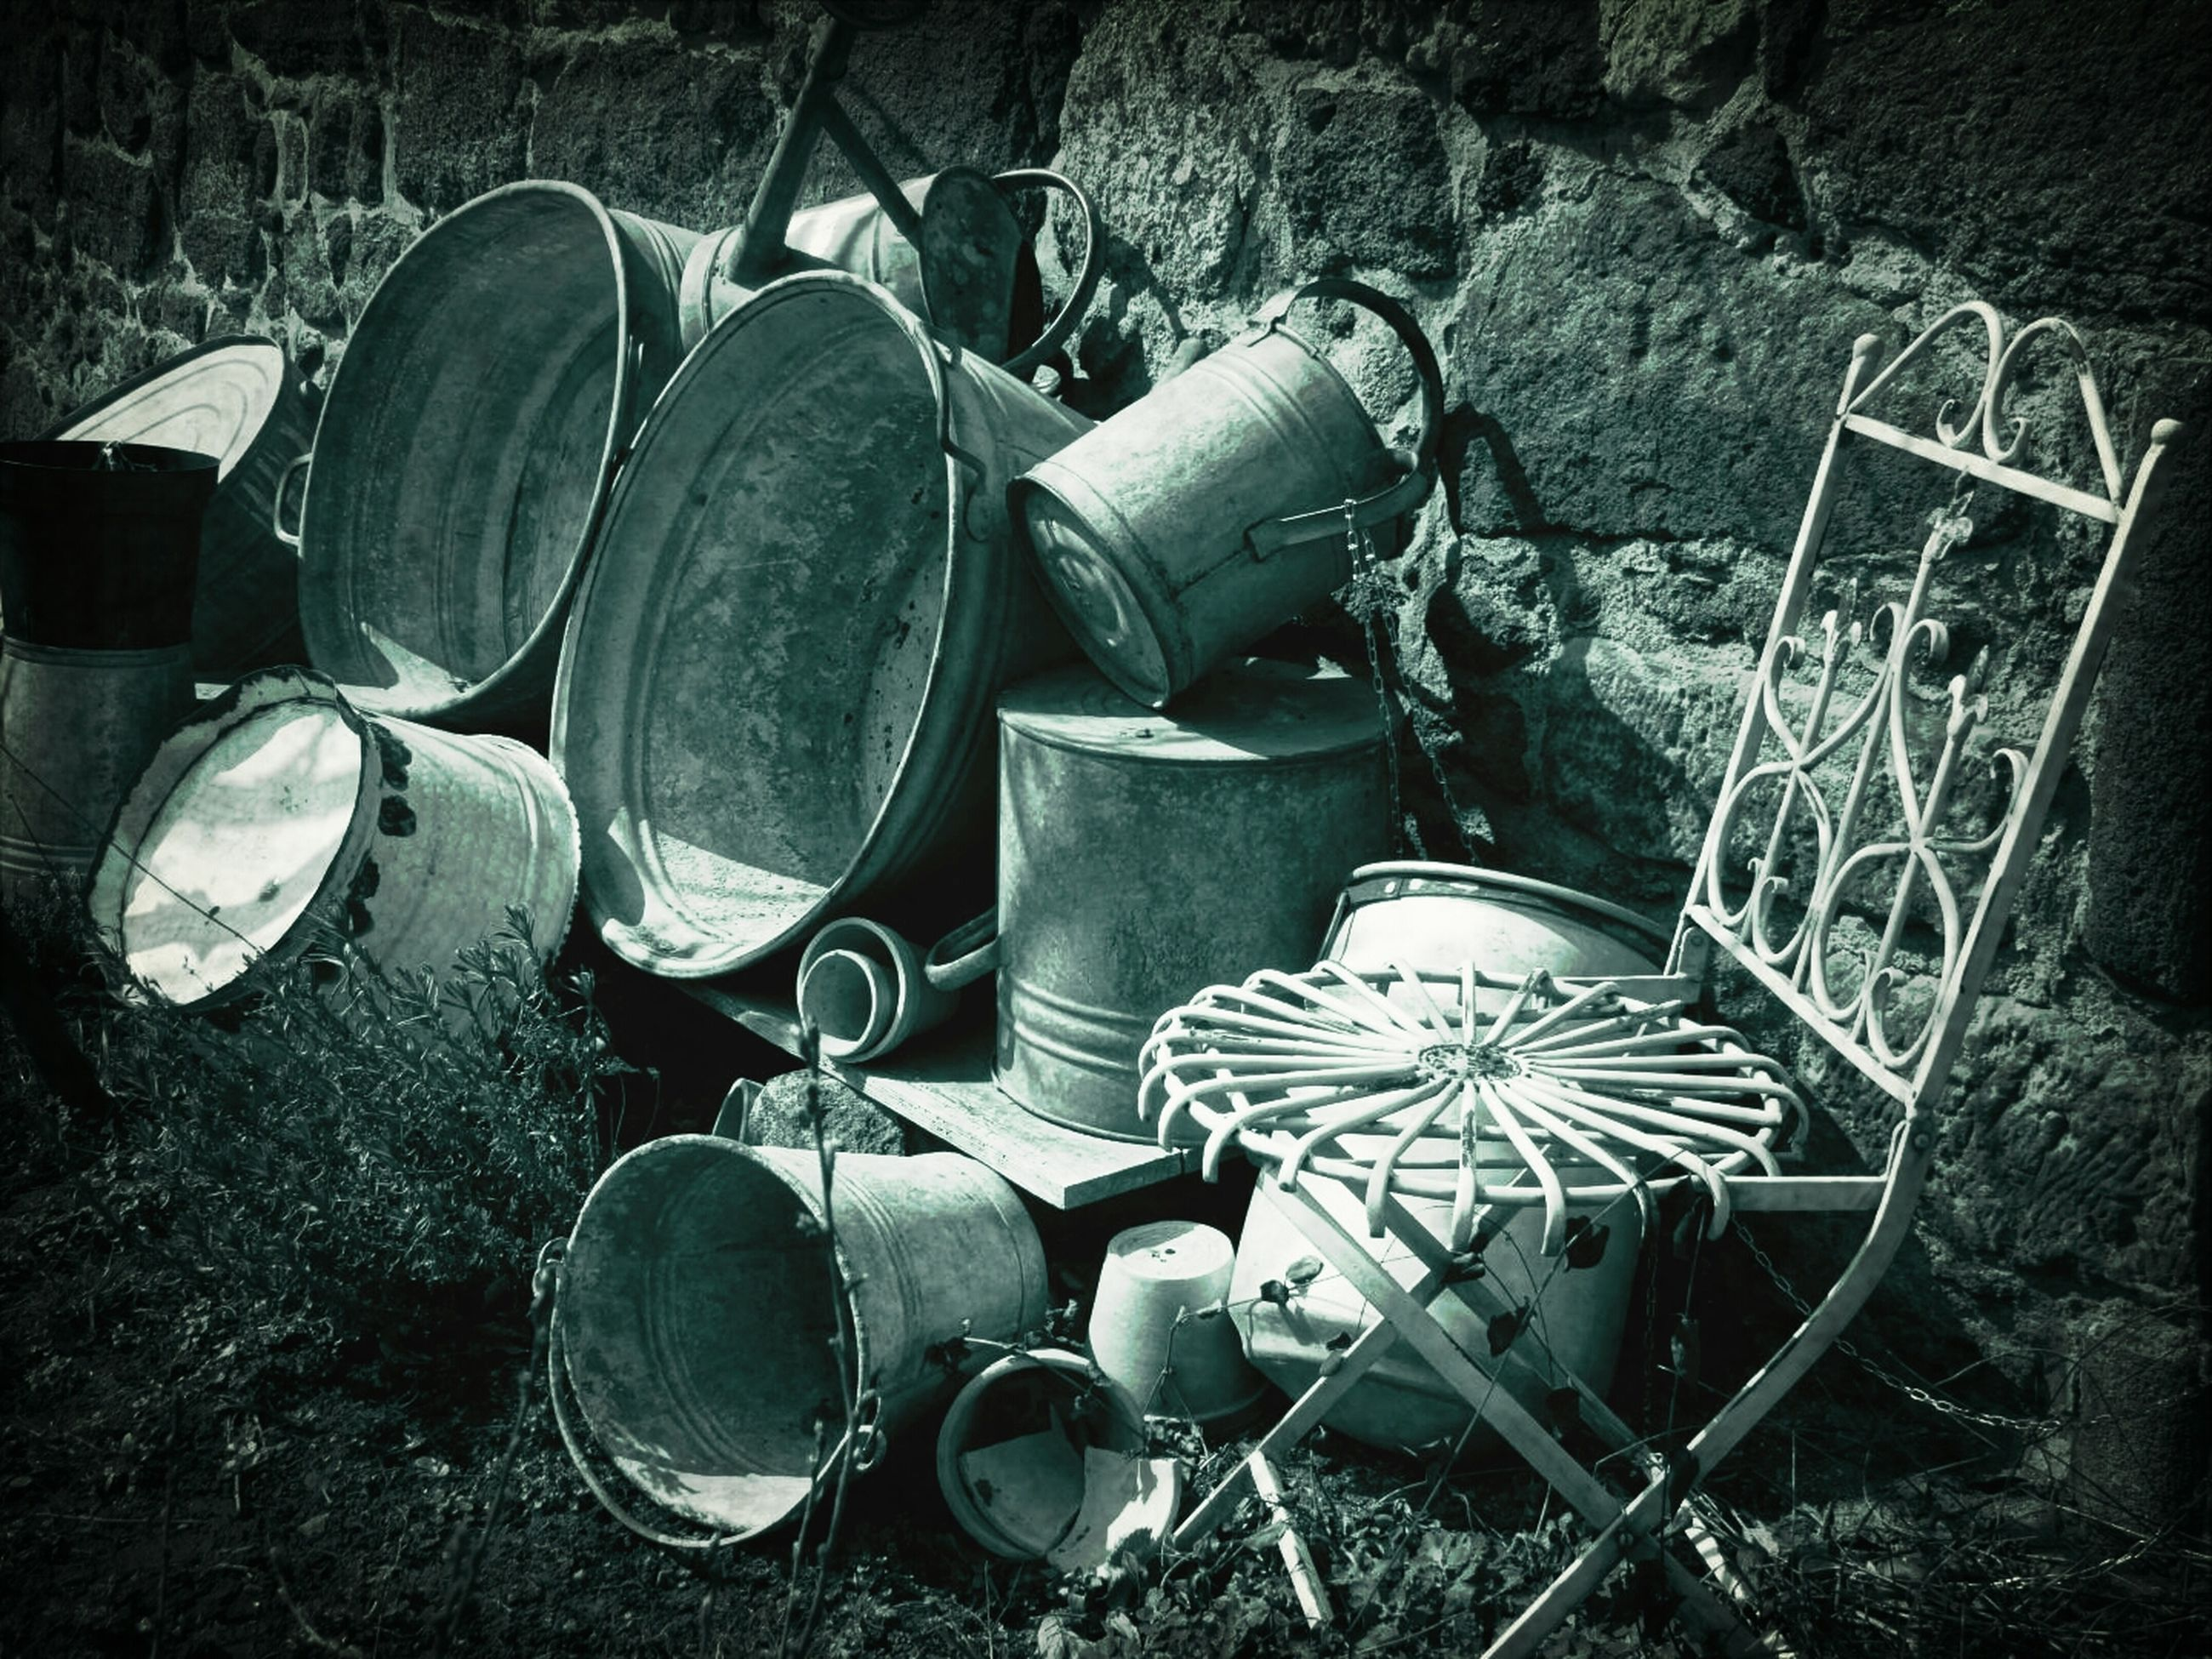 abandoned, obsolete, old, metal, damaged, still life, large group of objects, run-down, high angle view, rusty, deterioration, no people, stack, abundance, equipment, old-fashioned, bad condition, day, close-up, broken